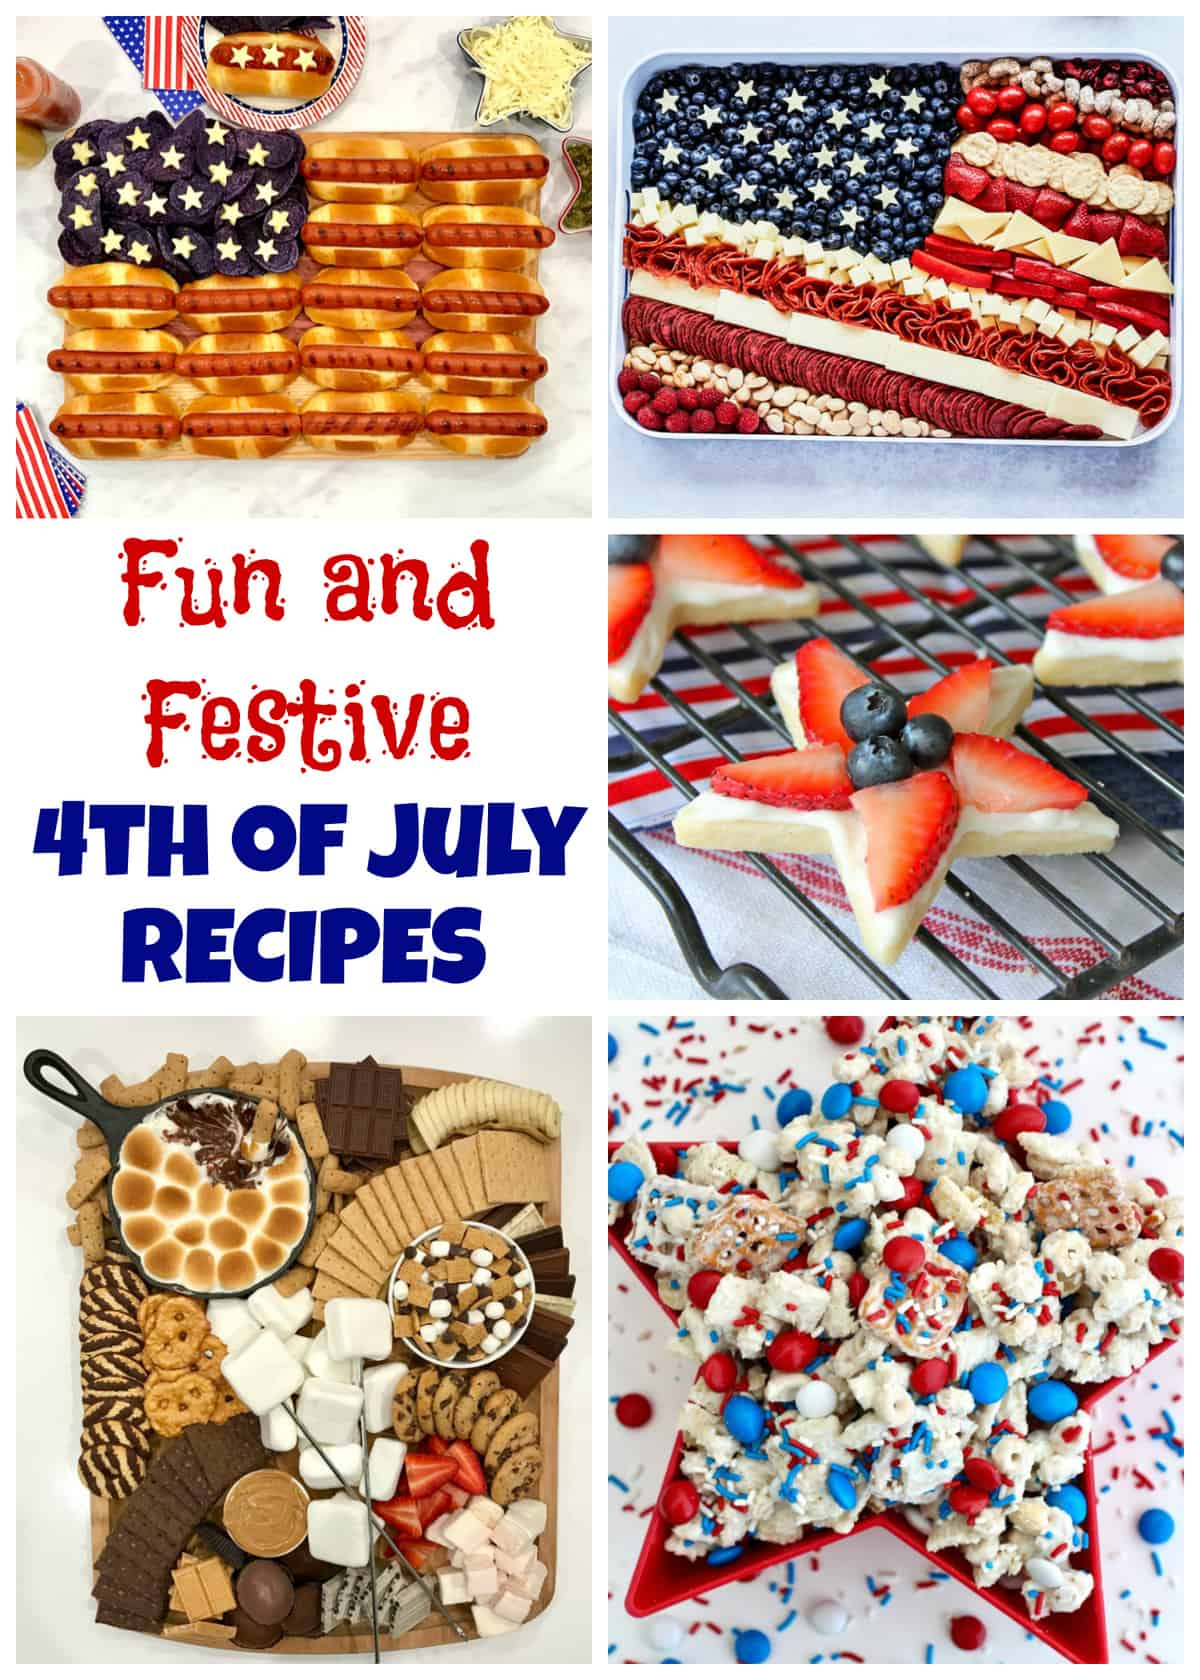 Fun and Festive 4th of July Recipes Round-up